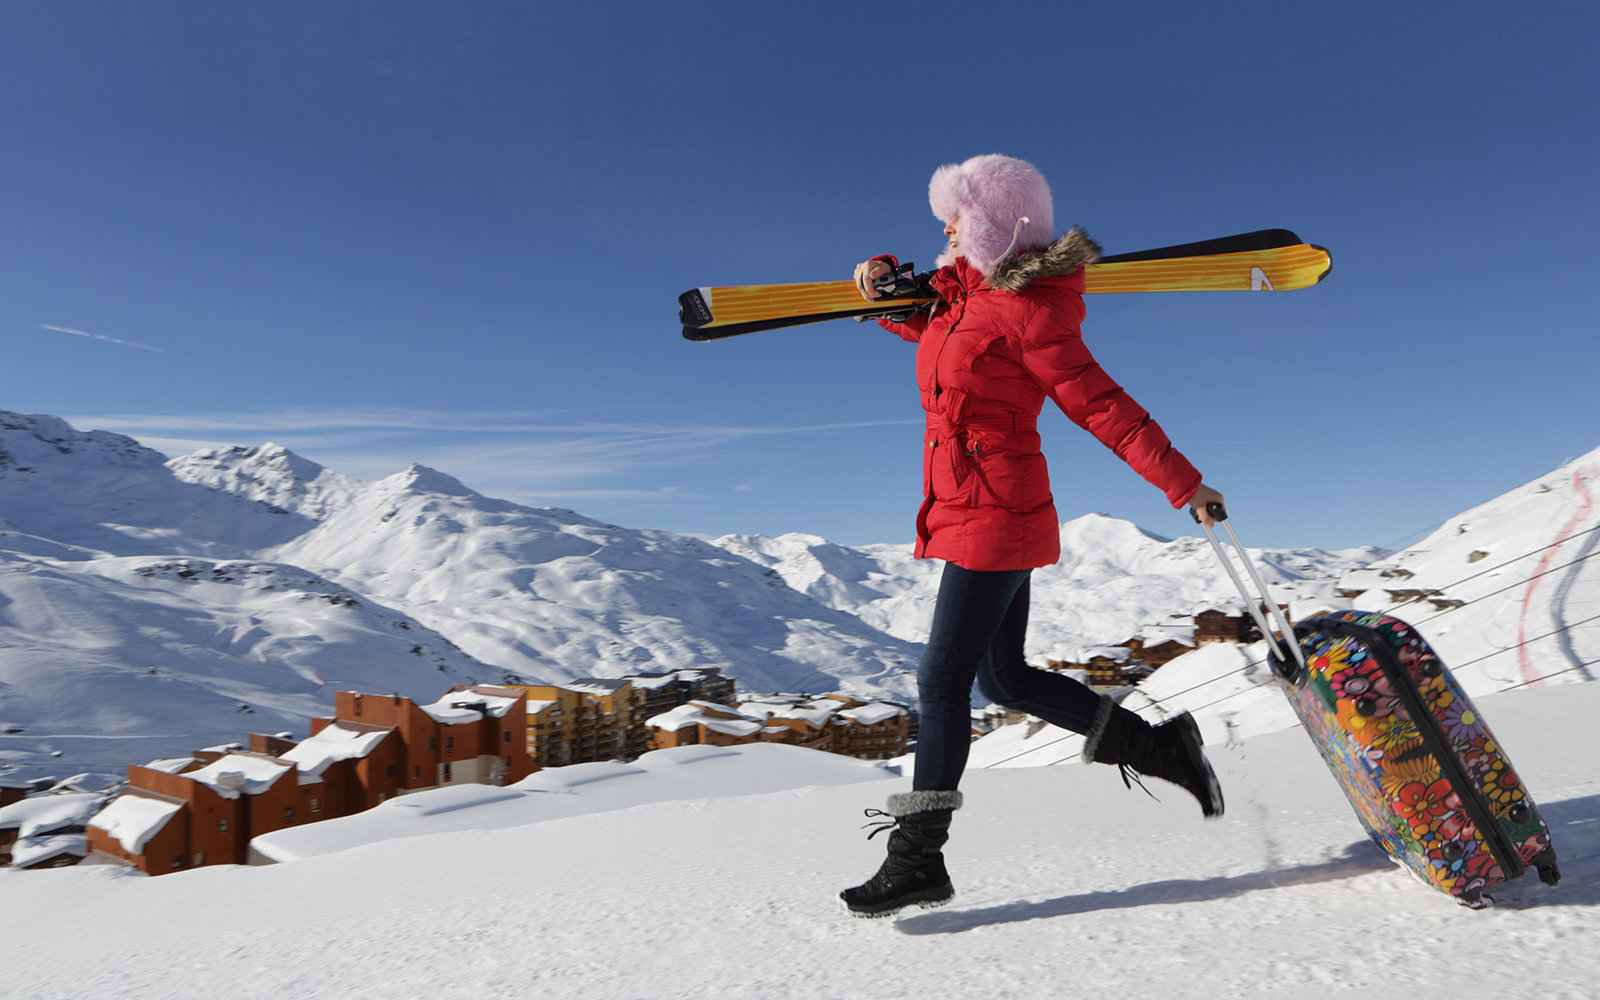 Traveling with skis